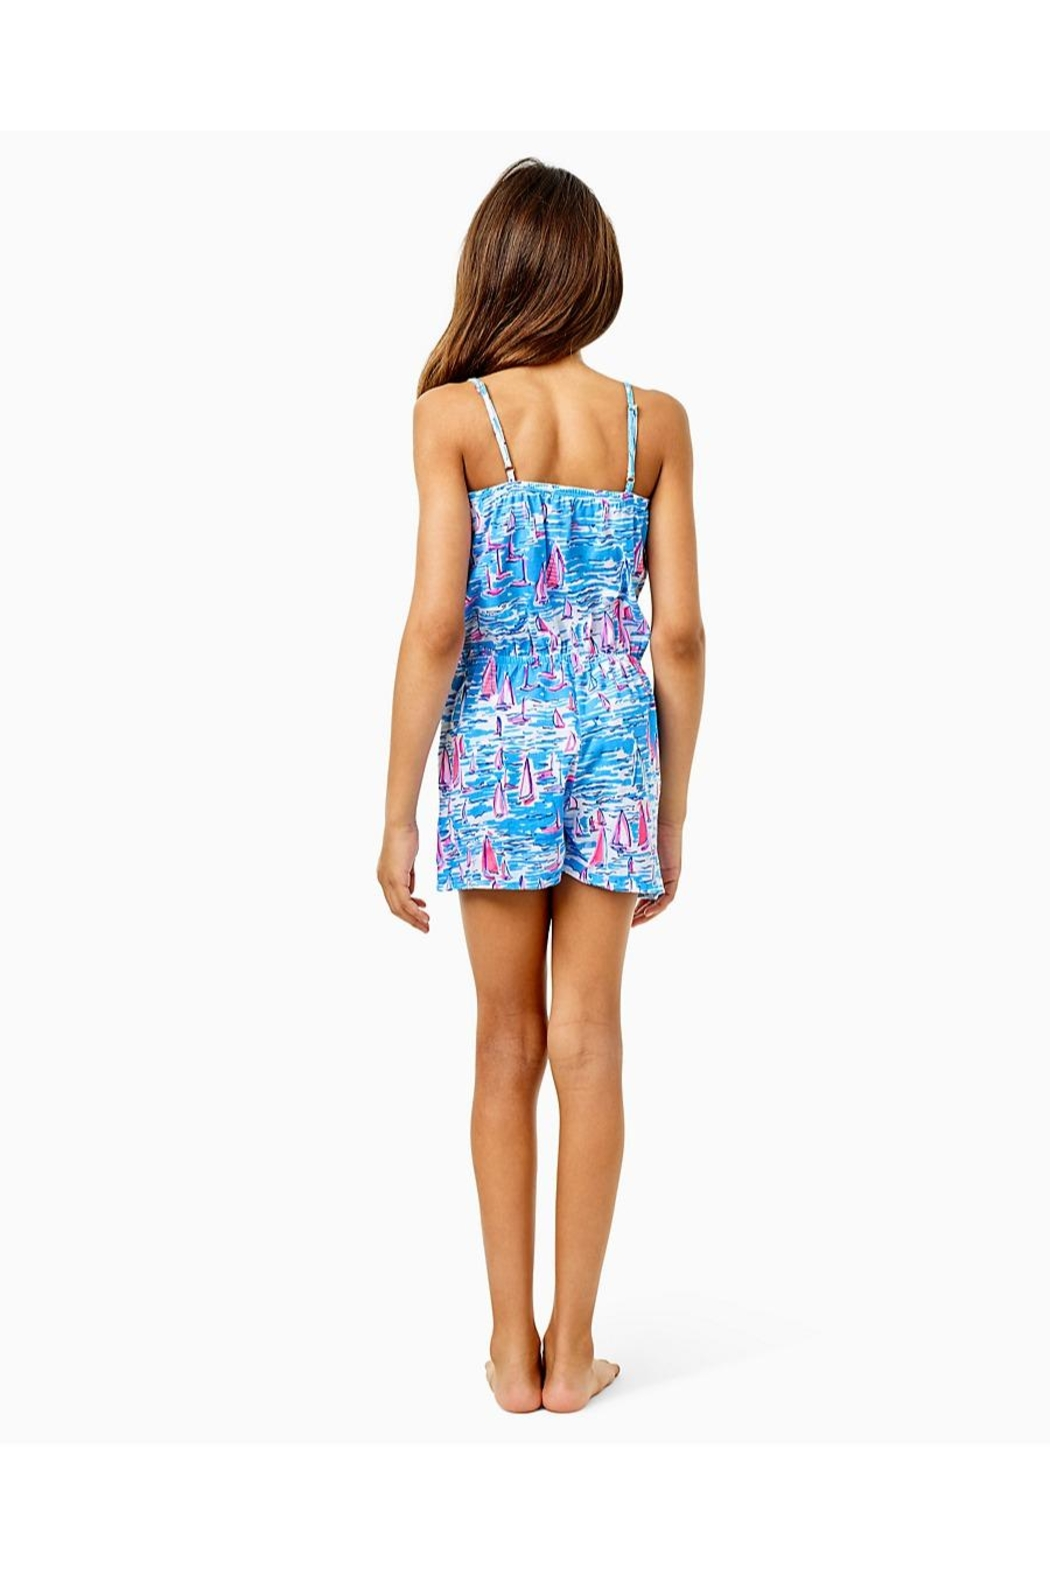 Lilly Pulitzer Girls Jaycee Romper - Front Full Image